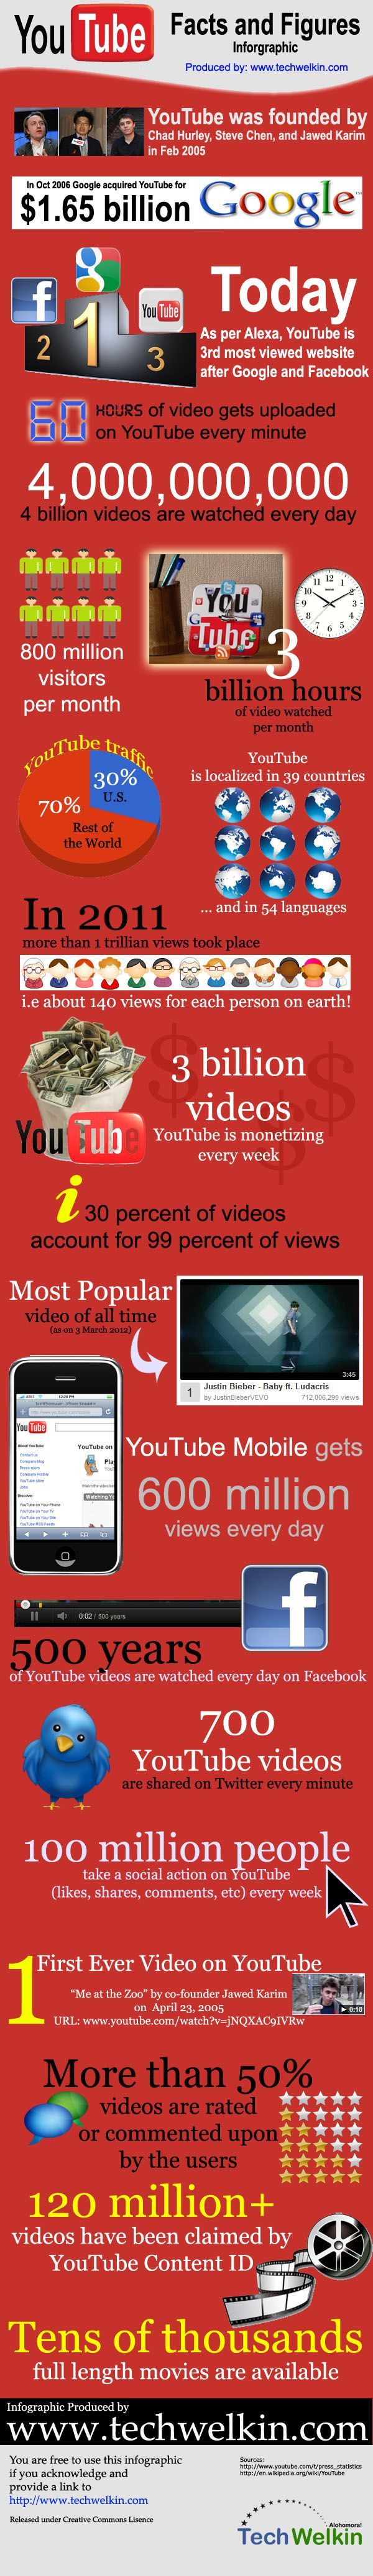 35 Mind Numbing YouTube Facts, Figures and Statistics